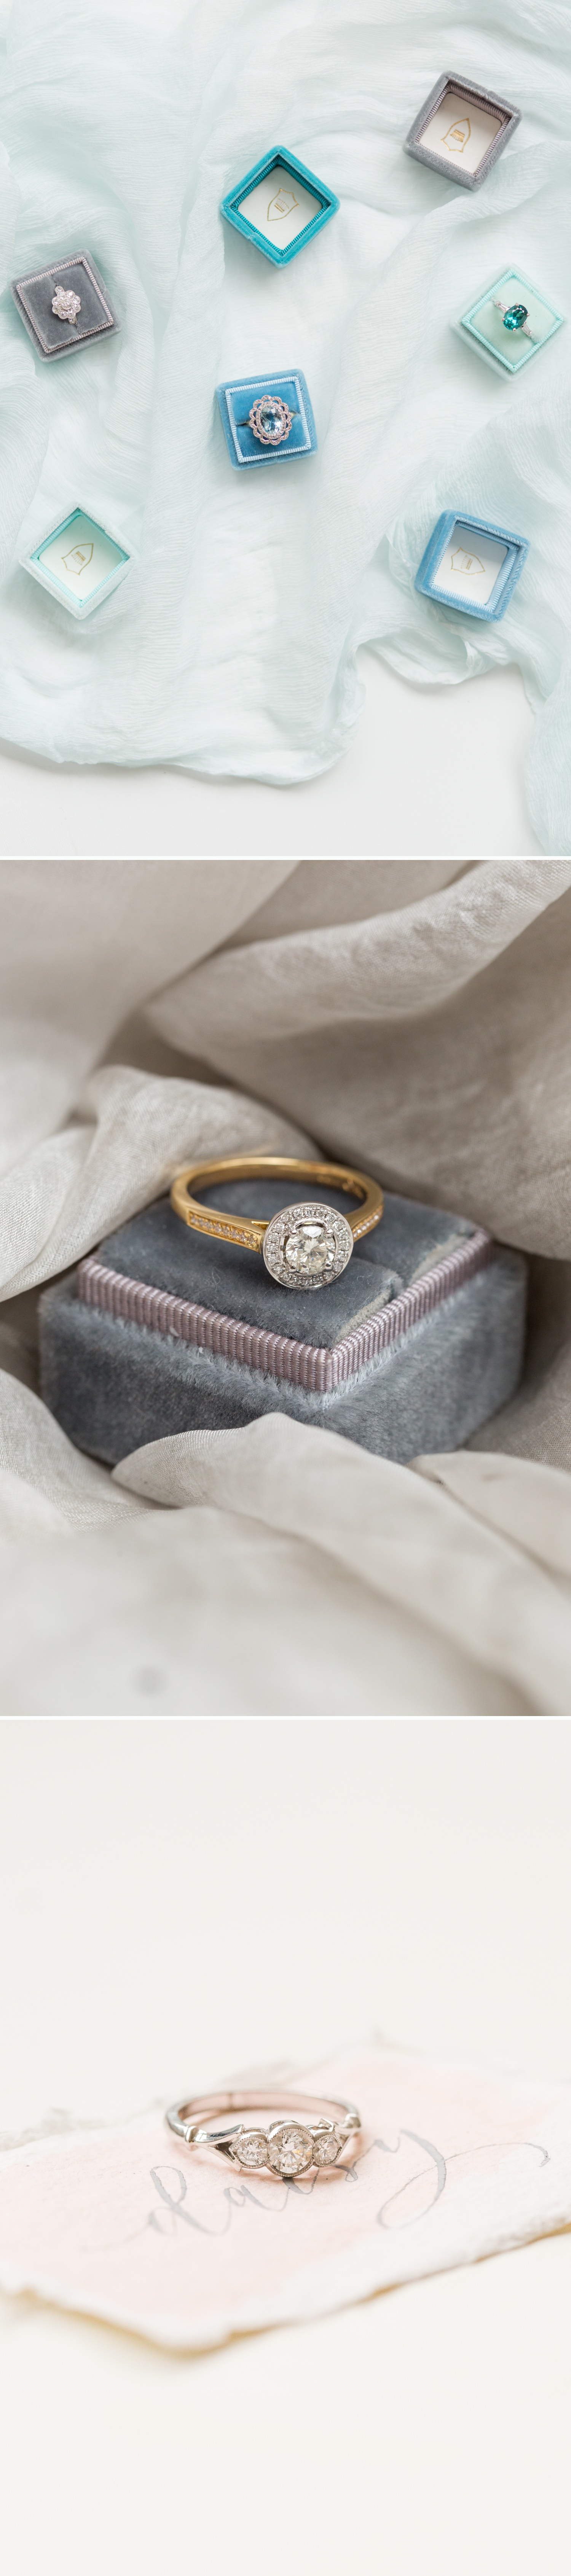 timeless engagement rings, diamond and sapphire antique rings